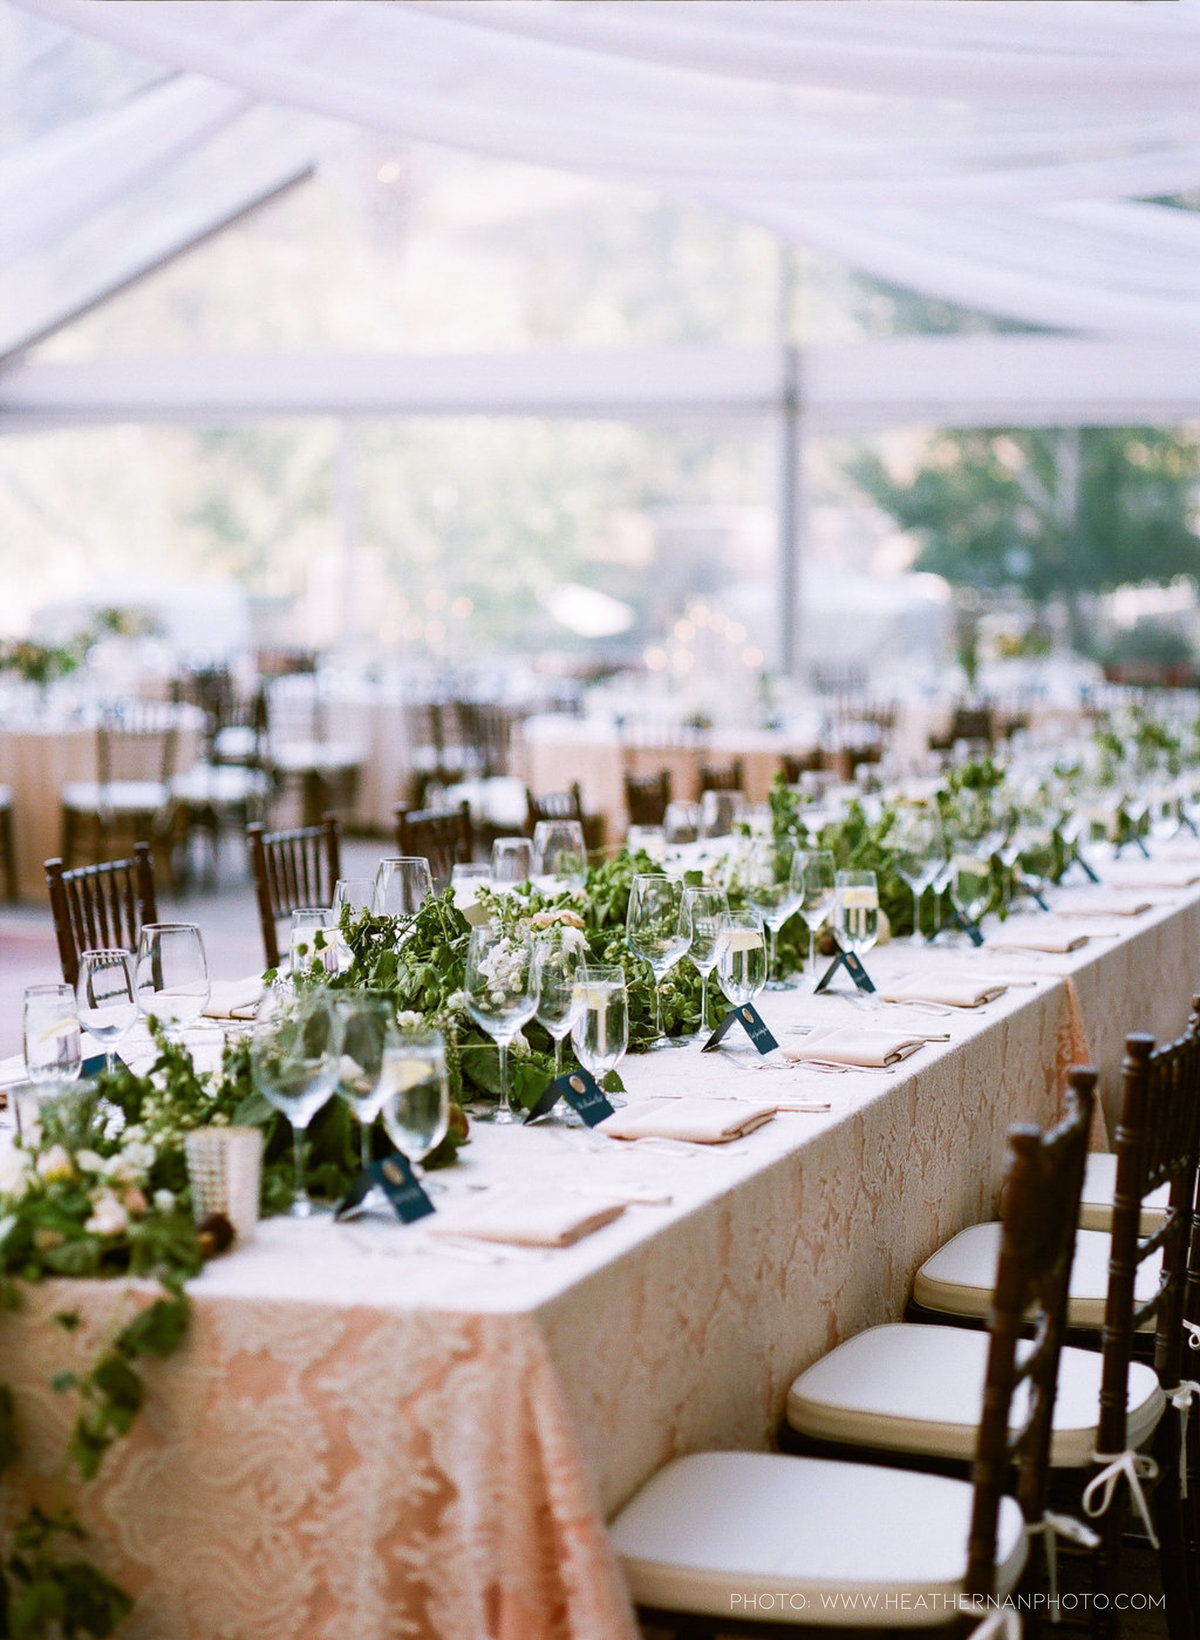 Utah Florist_Summer Weddings in Park City_Romantic Wedding_Luxe Mountain Weddings_Stein Eriksen Lodge Weddings_Artisan Bloom-0123